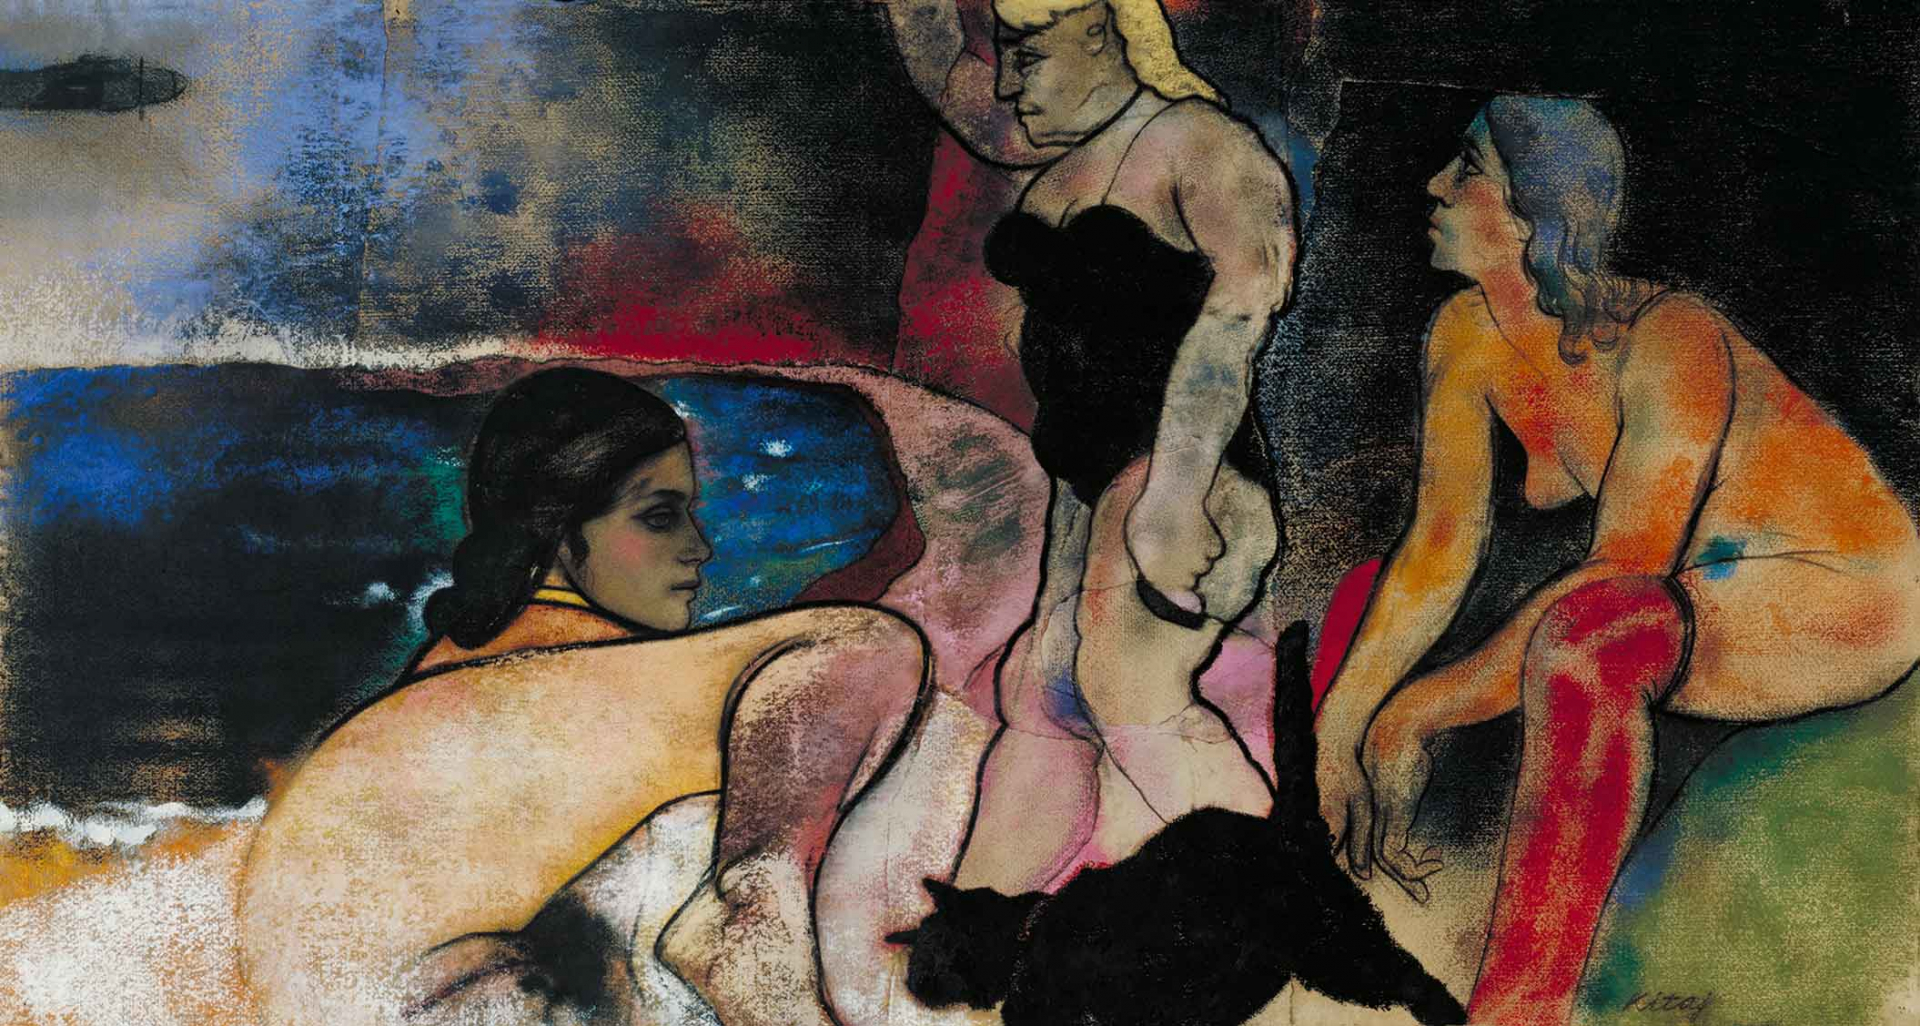 Colorful painting of three women and a black cat next to a body of water